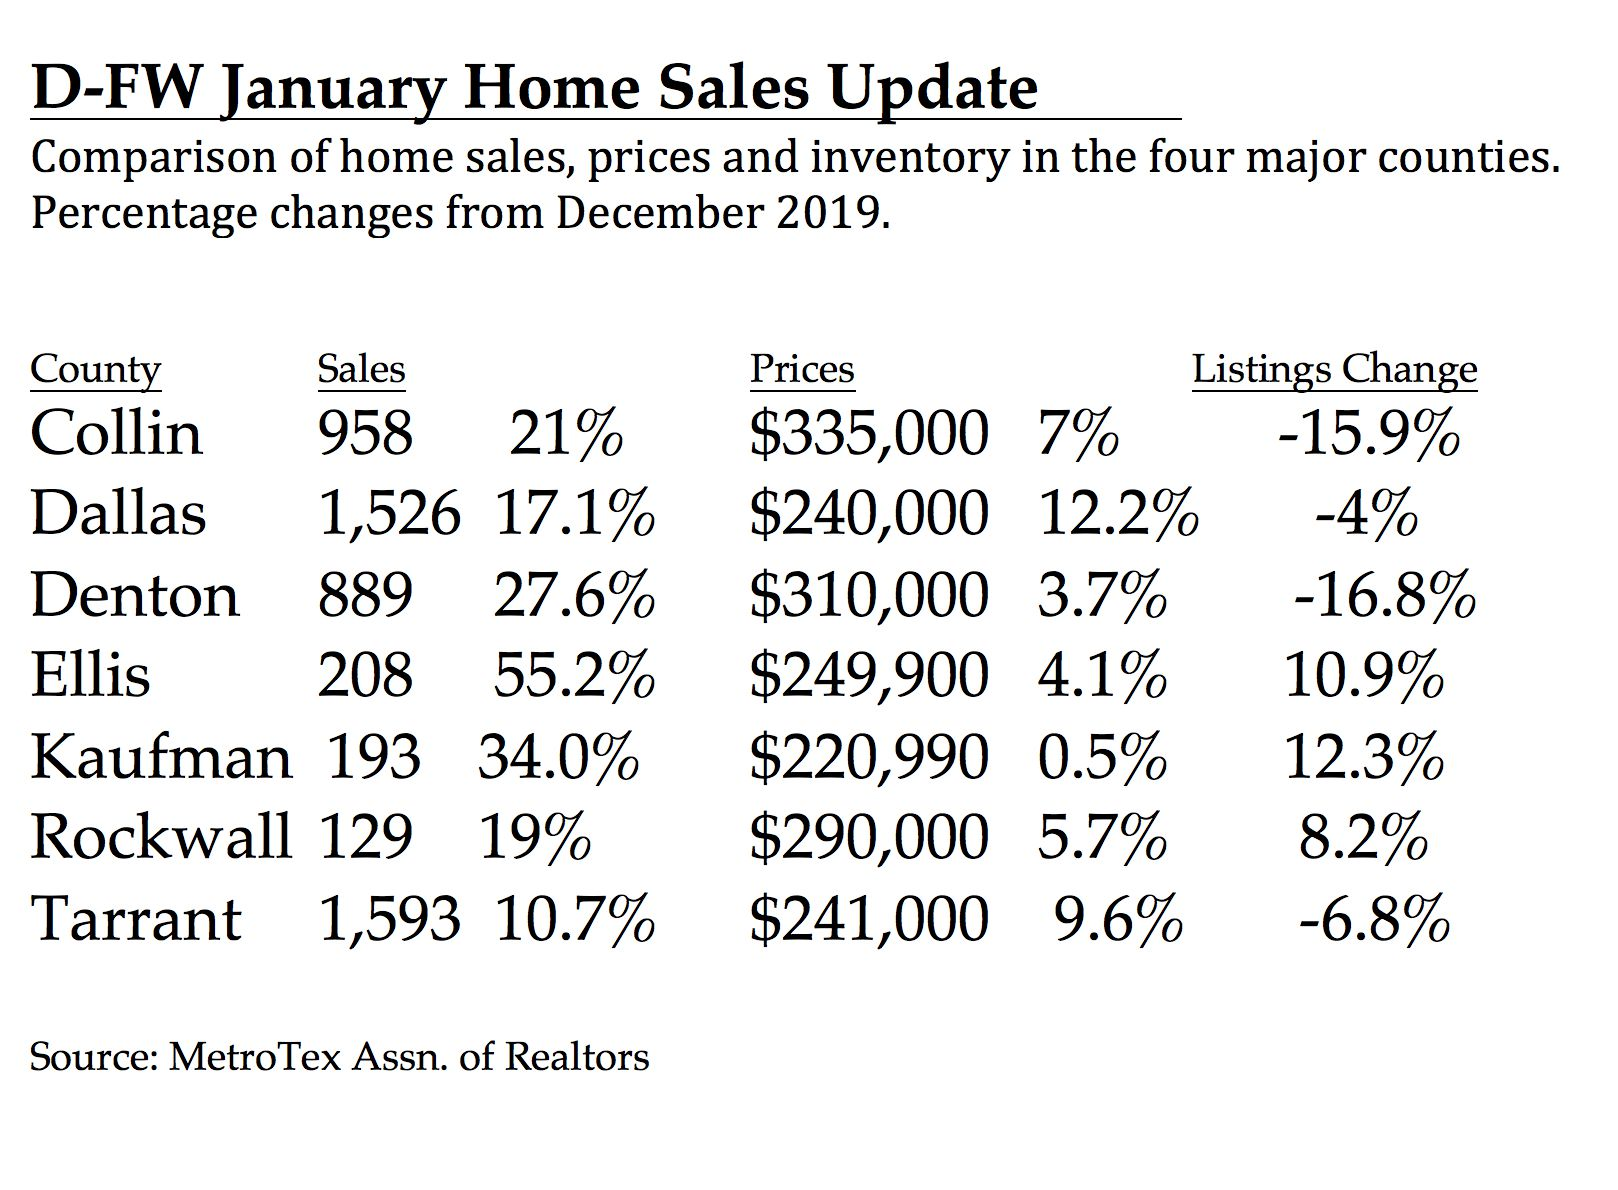 Dallas County had the greatest home price gain in January.